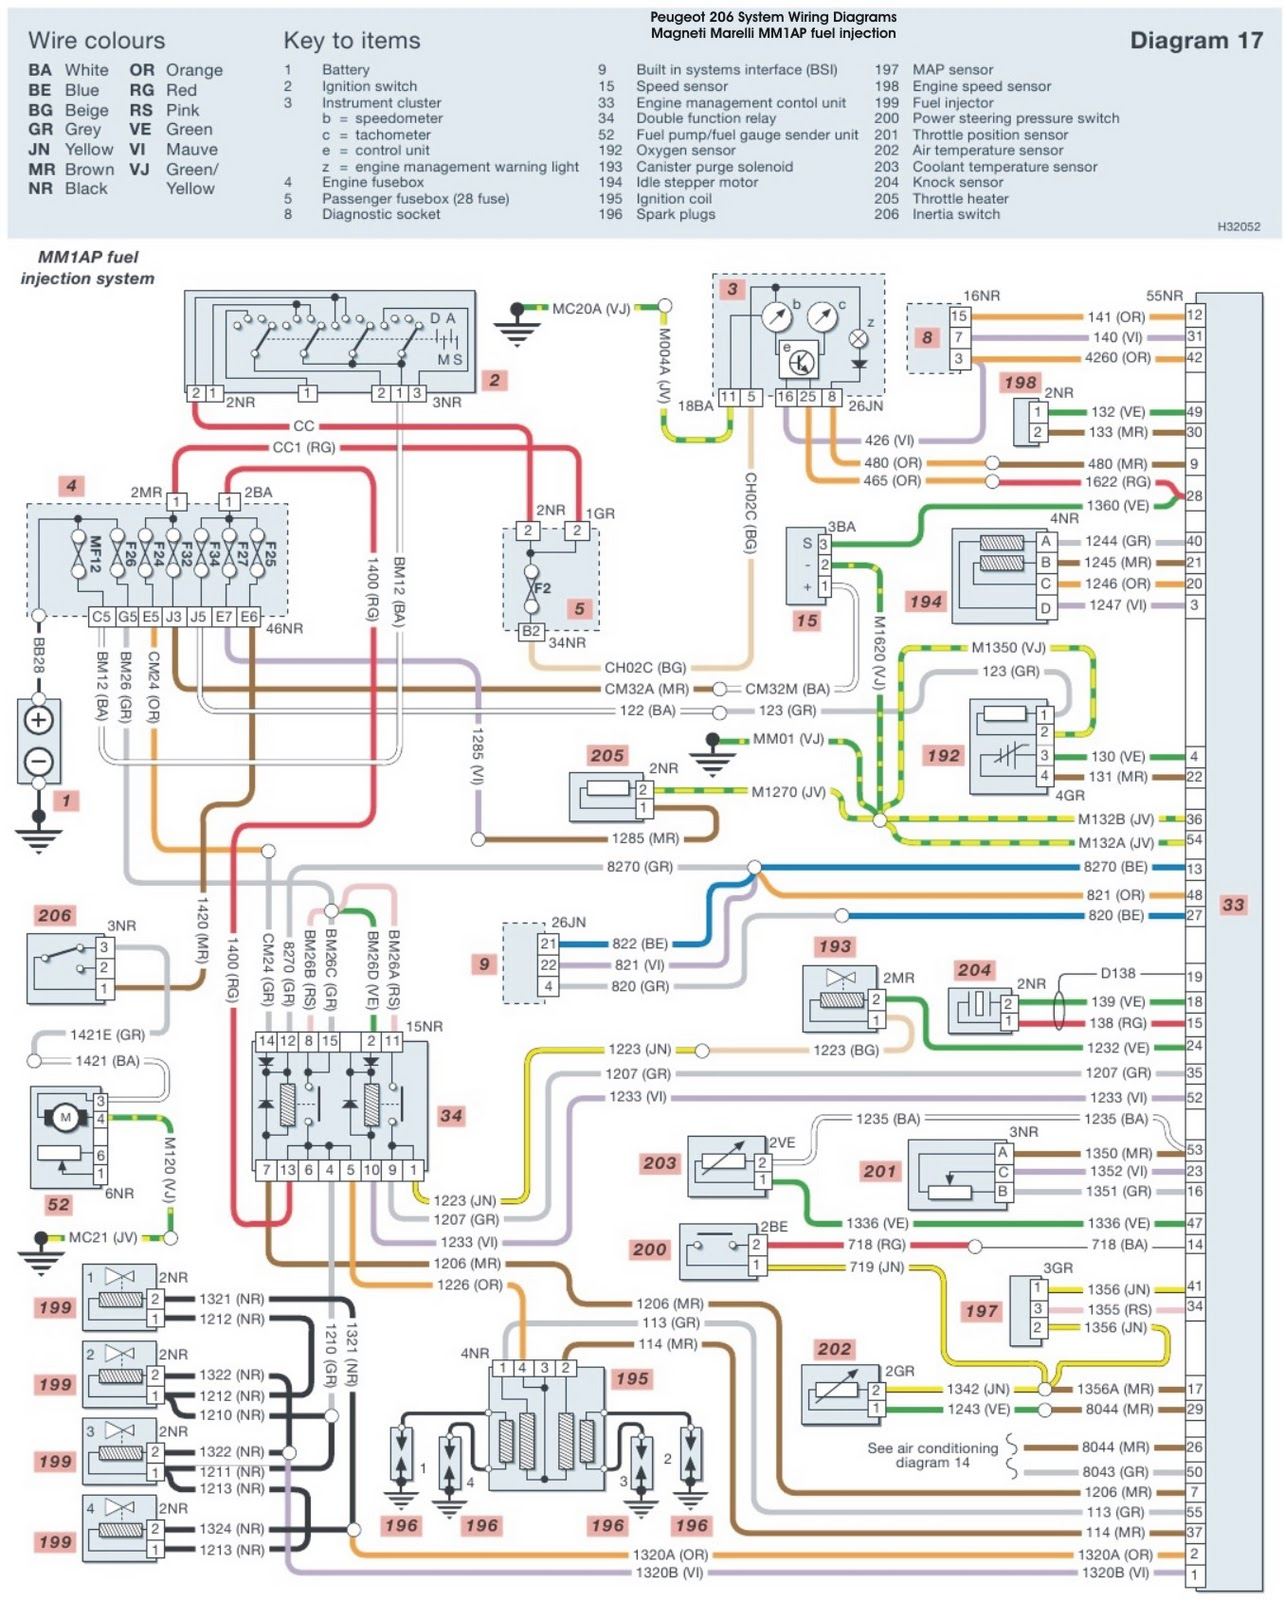 Peugeot 206 Kfw Wiring Diagram : Peugeot fuel injection system wiring diagrams